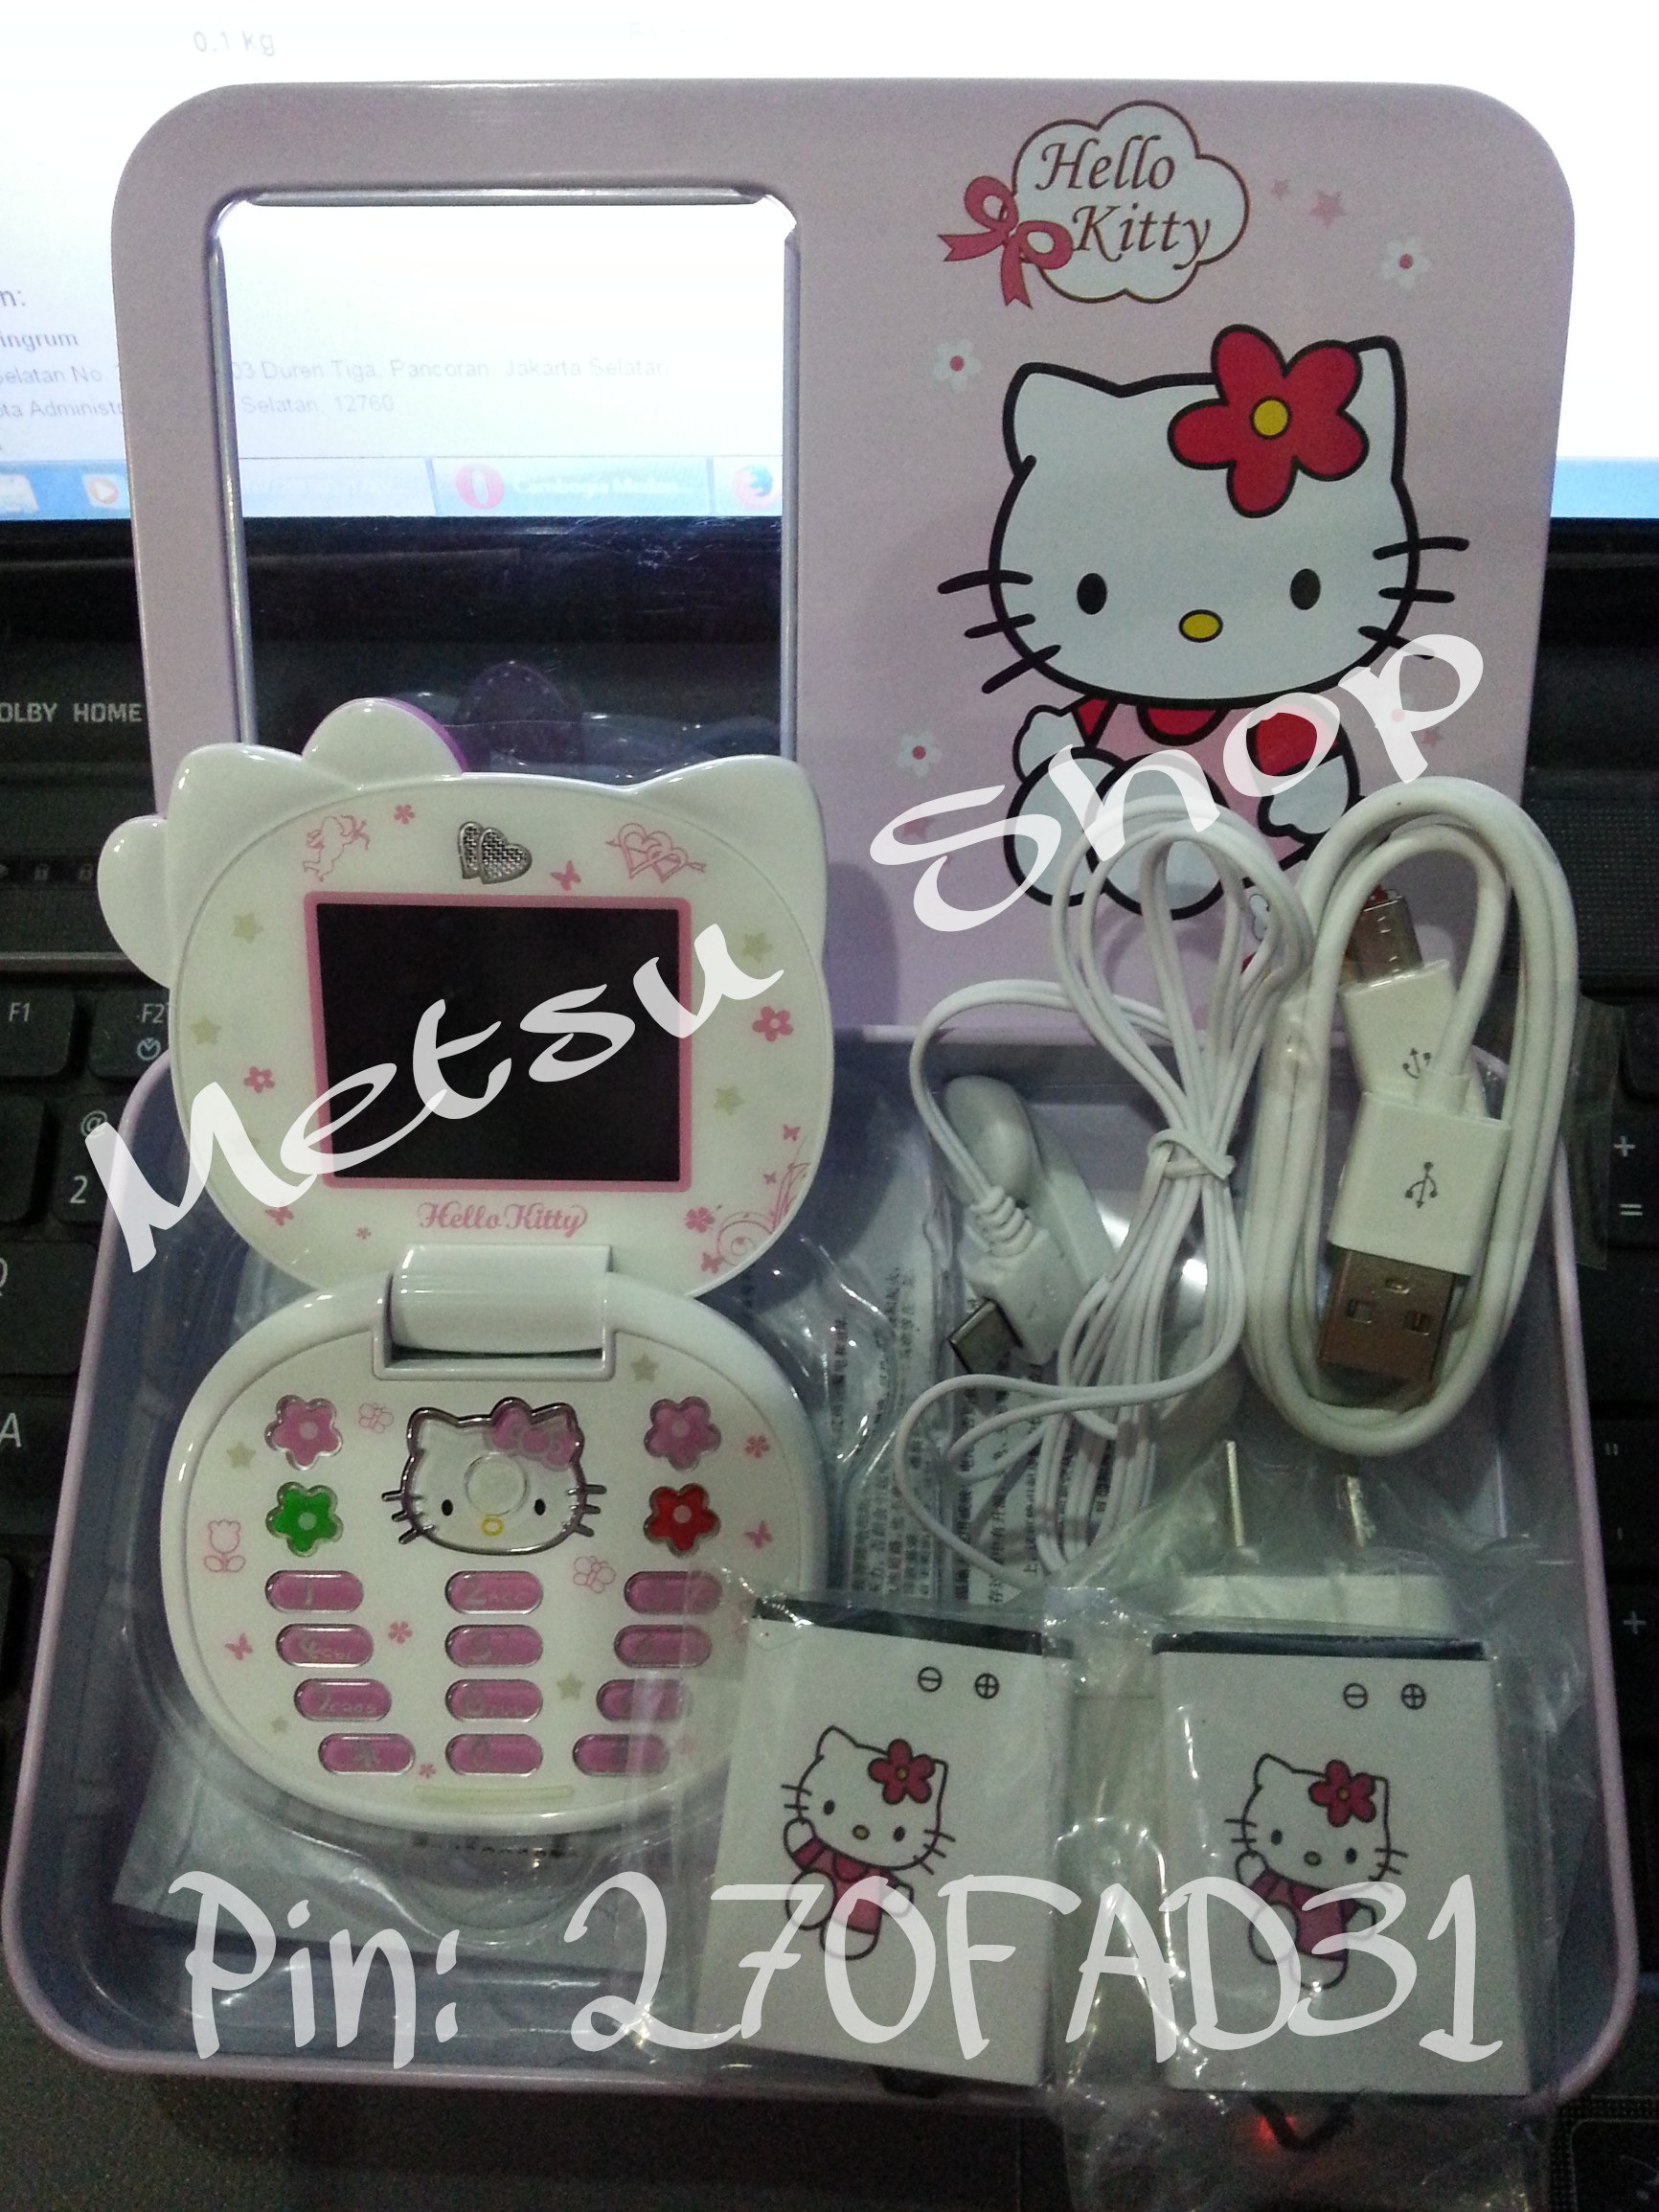 Lihat Rumah Hello Kitty Jual Hp Kepala Kitty Handphone Fashion Hello Kitty Hk